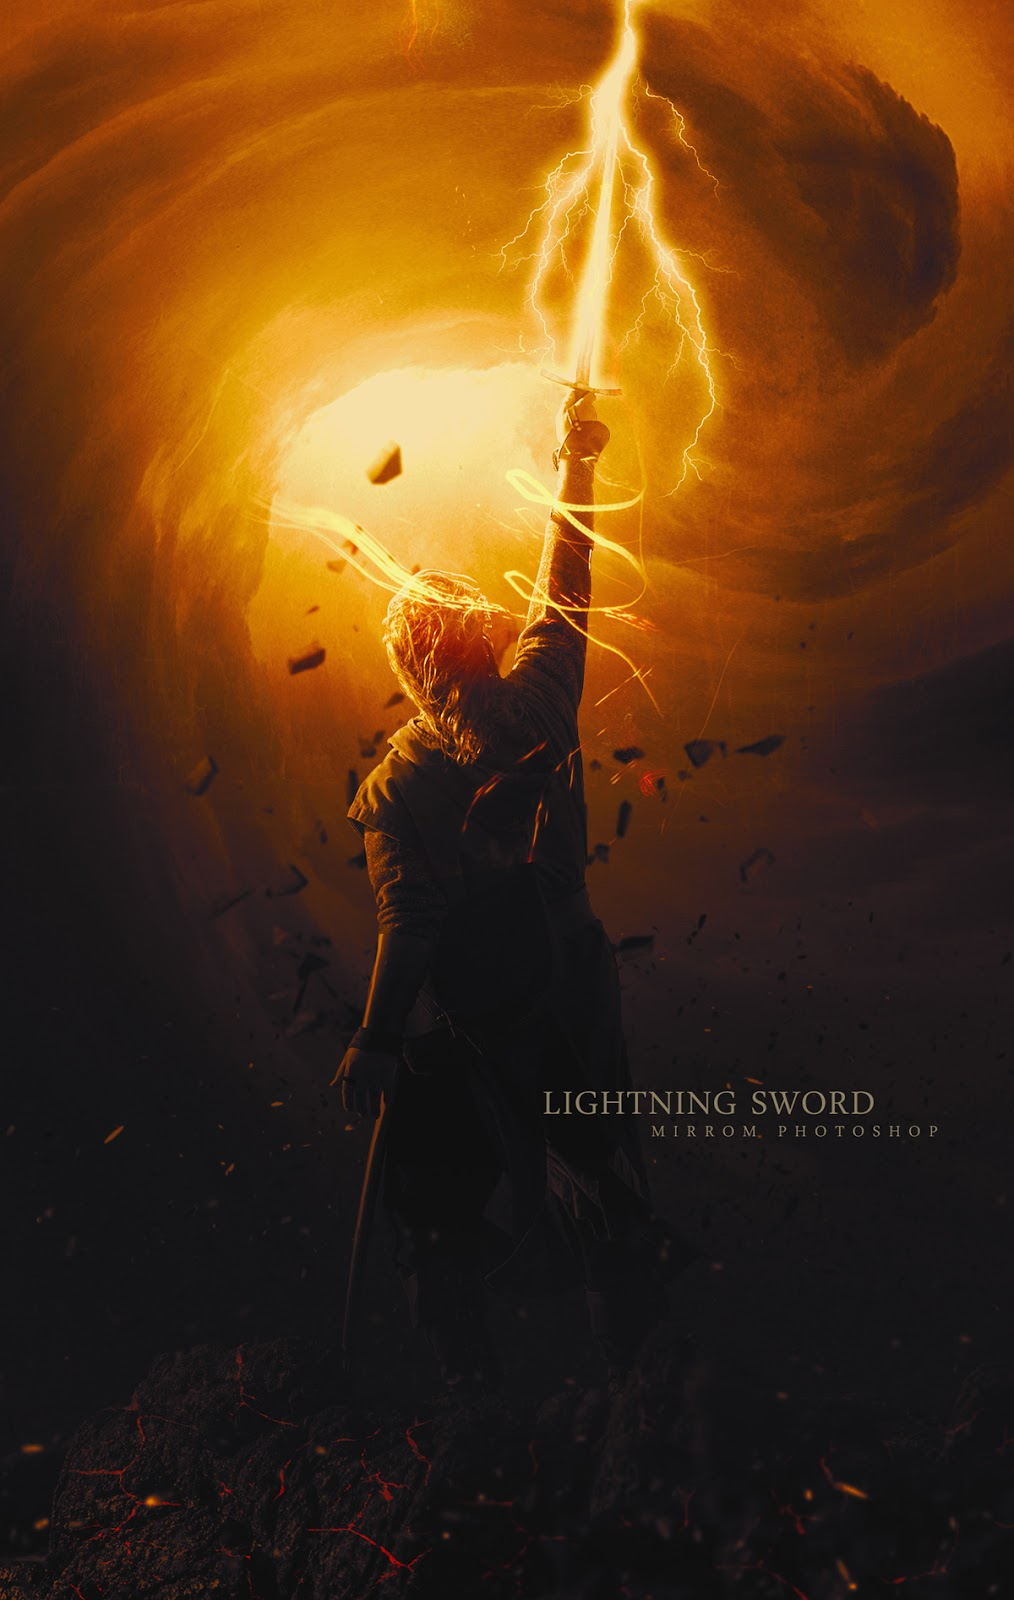 Create This Lightning Sword Digital Art Photo Manipulation Tutorial